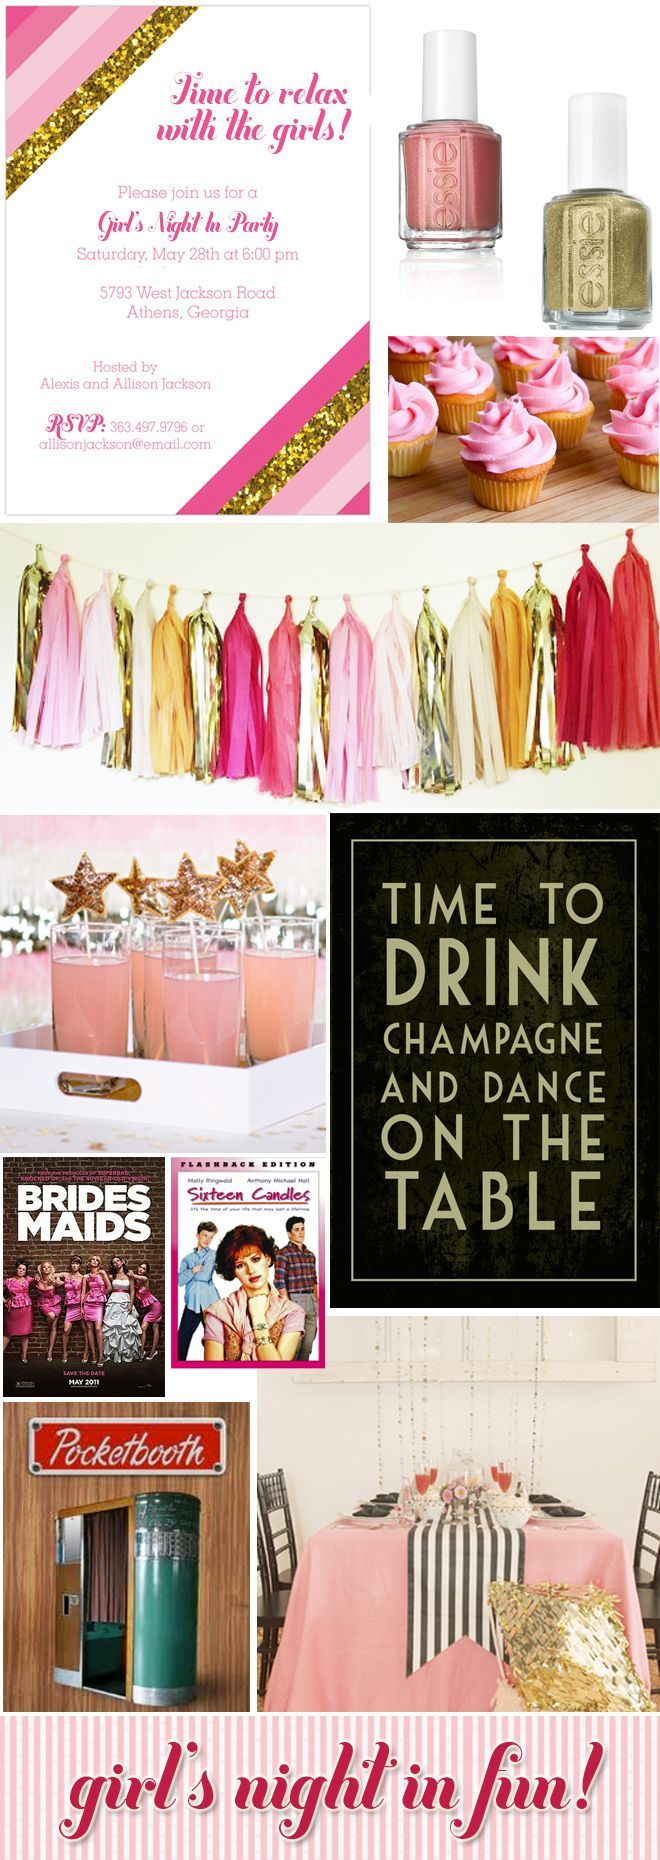 Gmail themes night - 110 Best Images About Girls Night In Party Ideas On Pinterest Pink Popcorn Girls Weekend And Slumber Parties